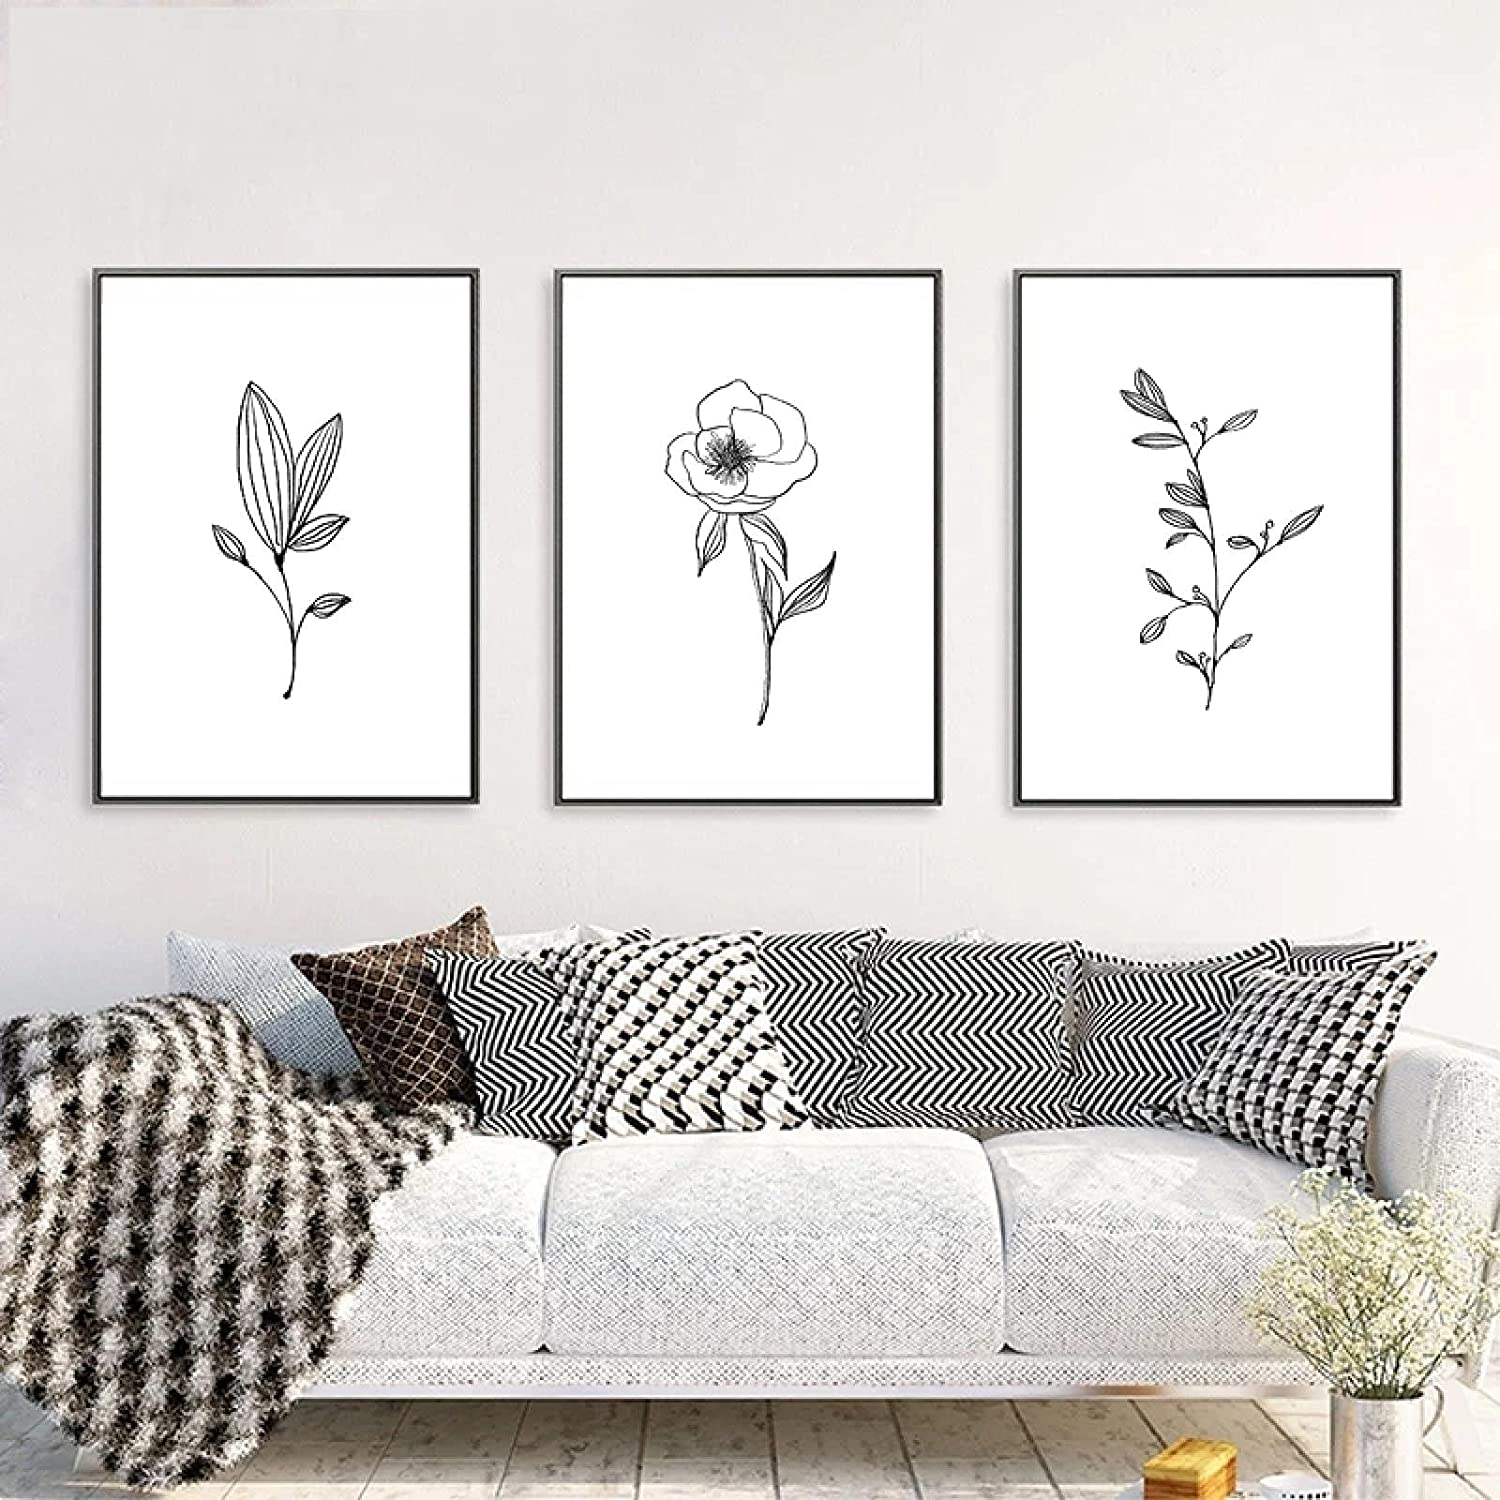 Giclee Minimalist OFFicial Decor Minimal Product Wall Pencil Leaf Drawings Art C